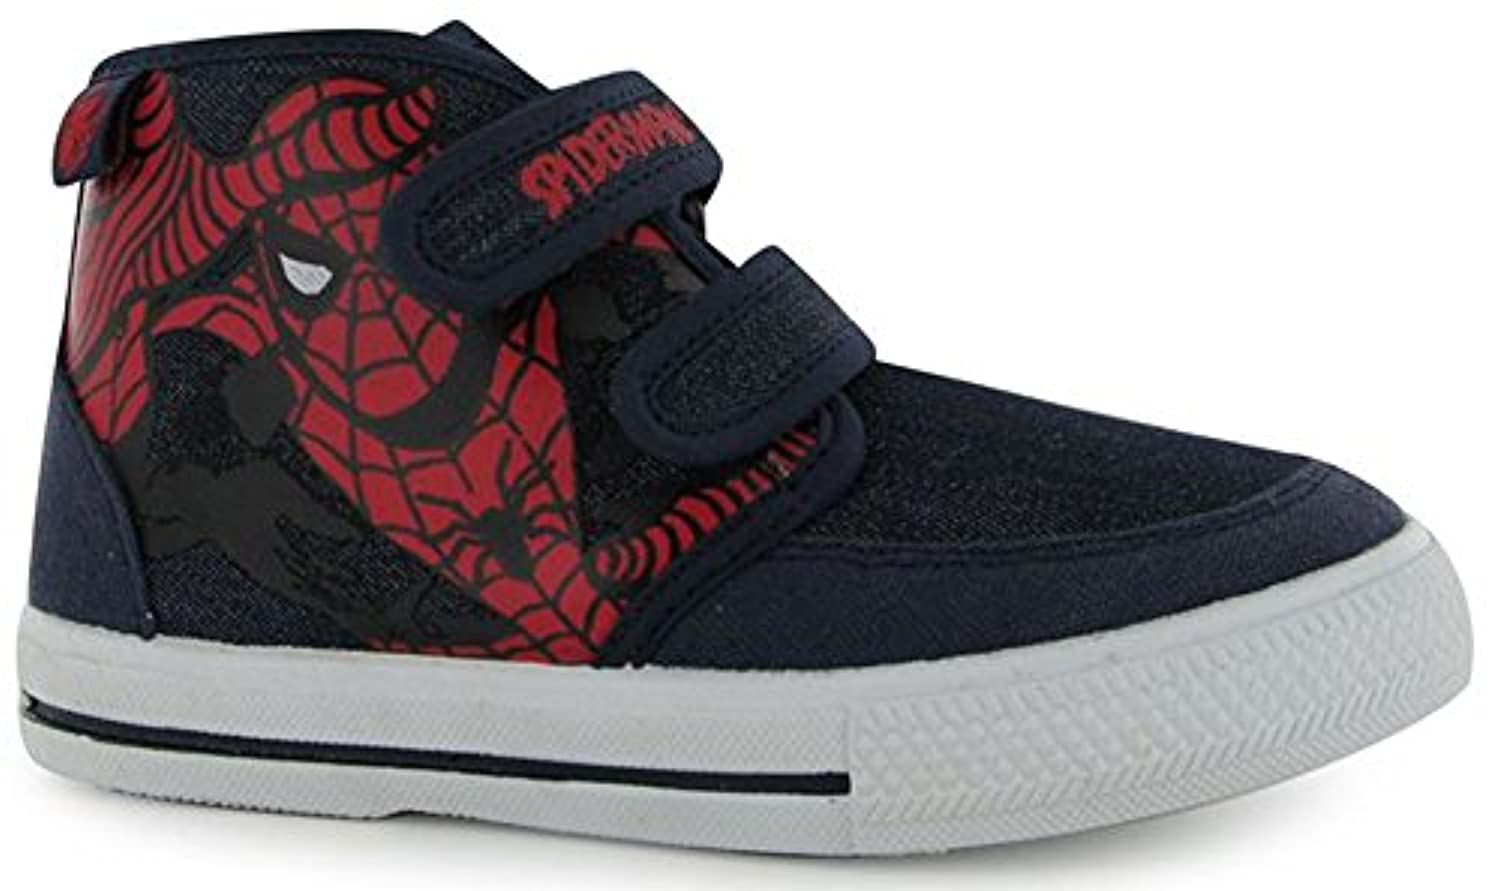 Infants Boys Girls Lightweight Canvas Hi Tops Trainers Shoes (C10 (28), Avengers)